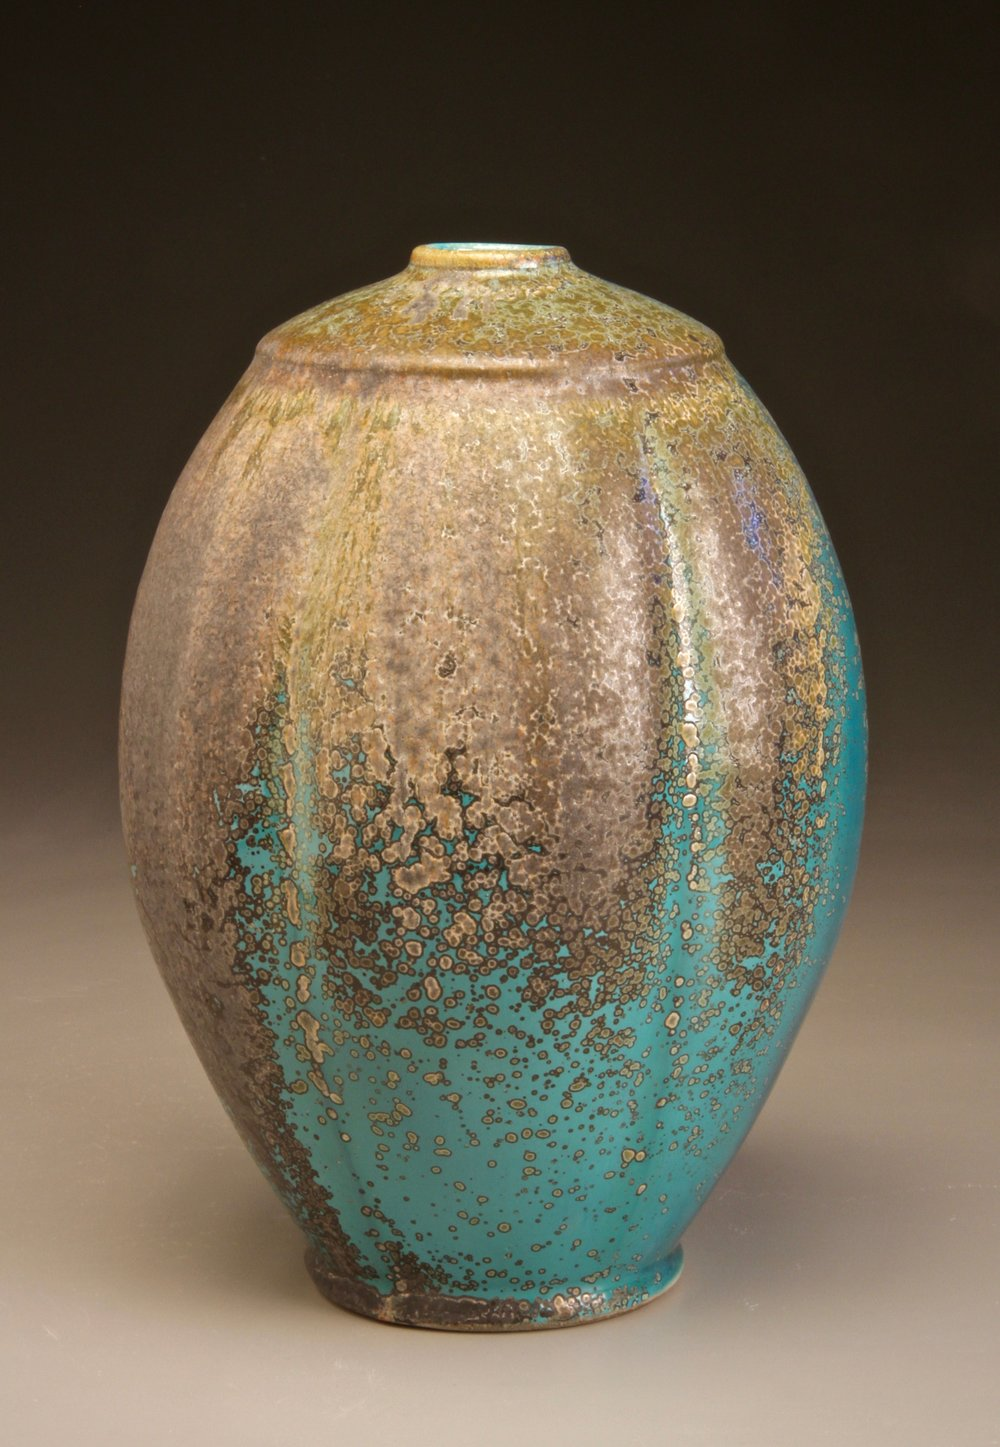 BO105 Melon Vase in Patina Green.jpg